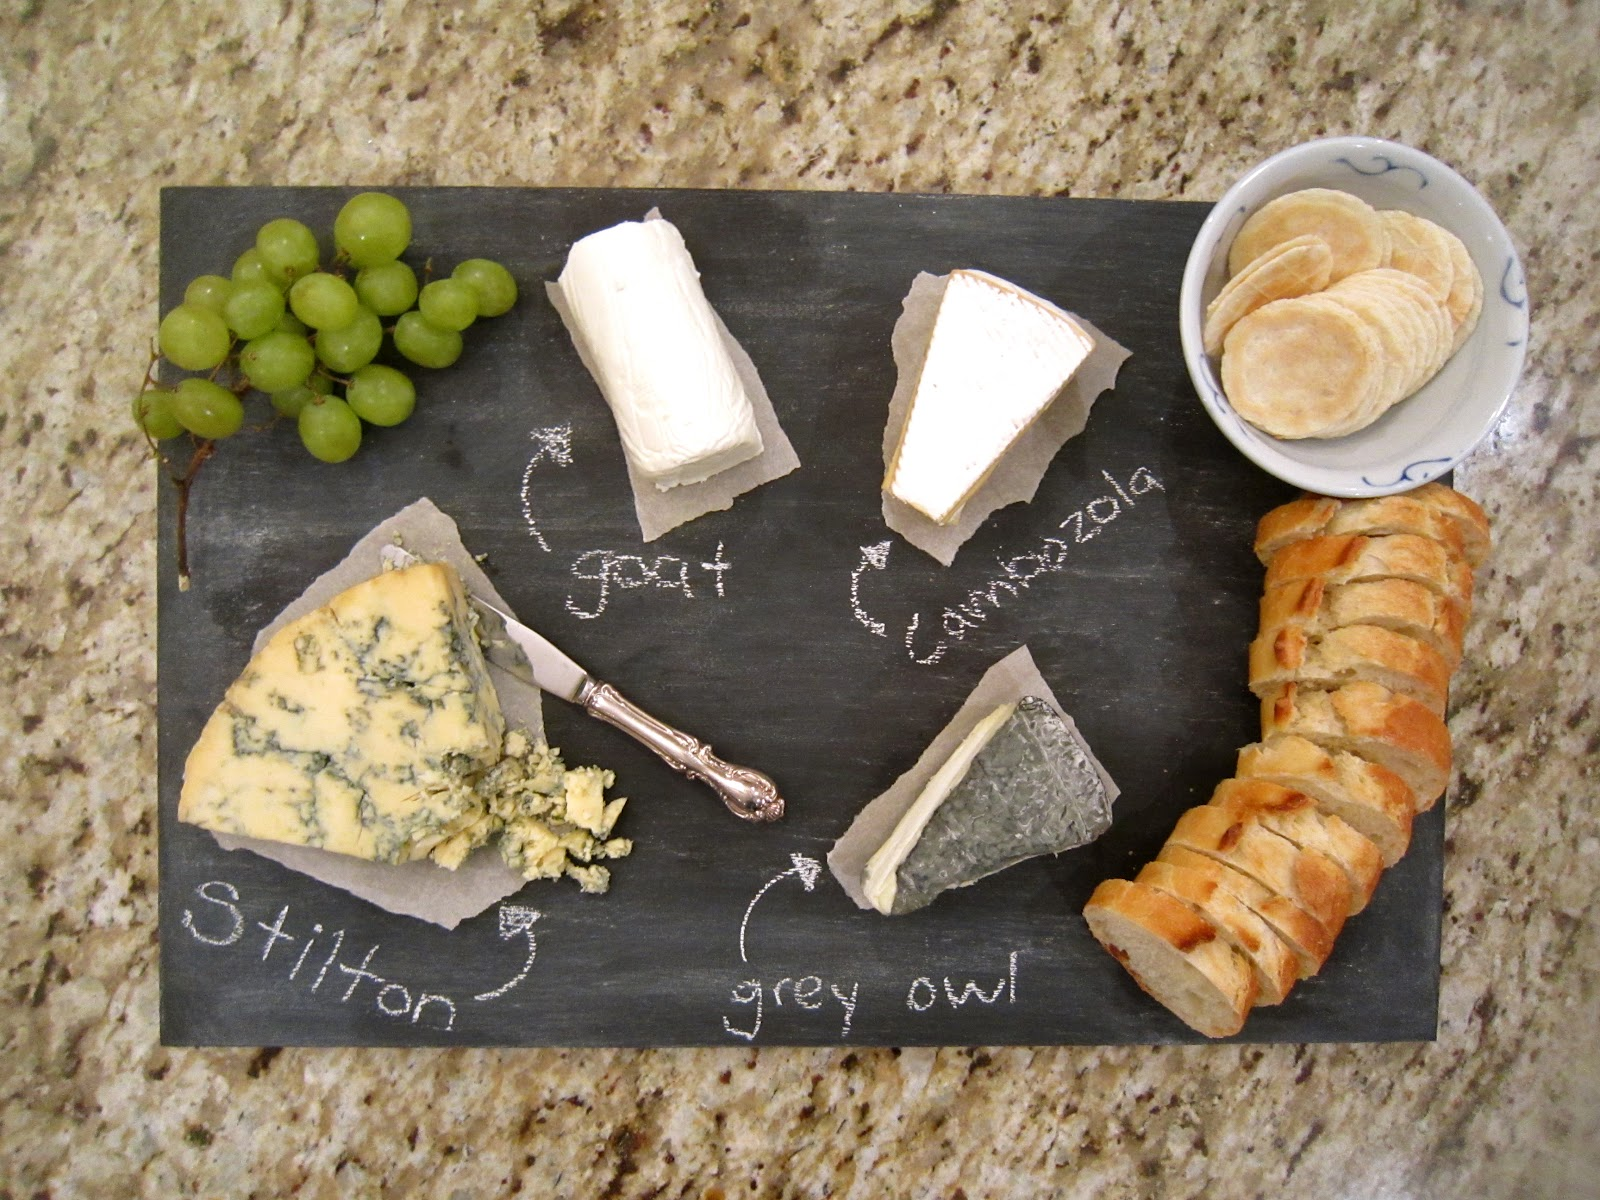 Sara Russell Diy Chalkboard Cheese Platter & Diy Cheese Plate - Castrophotos